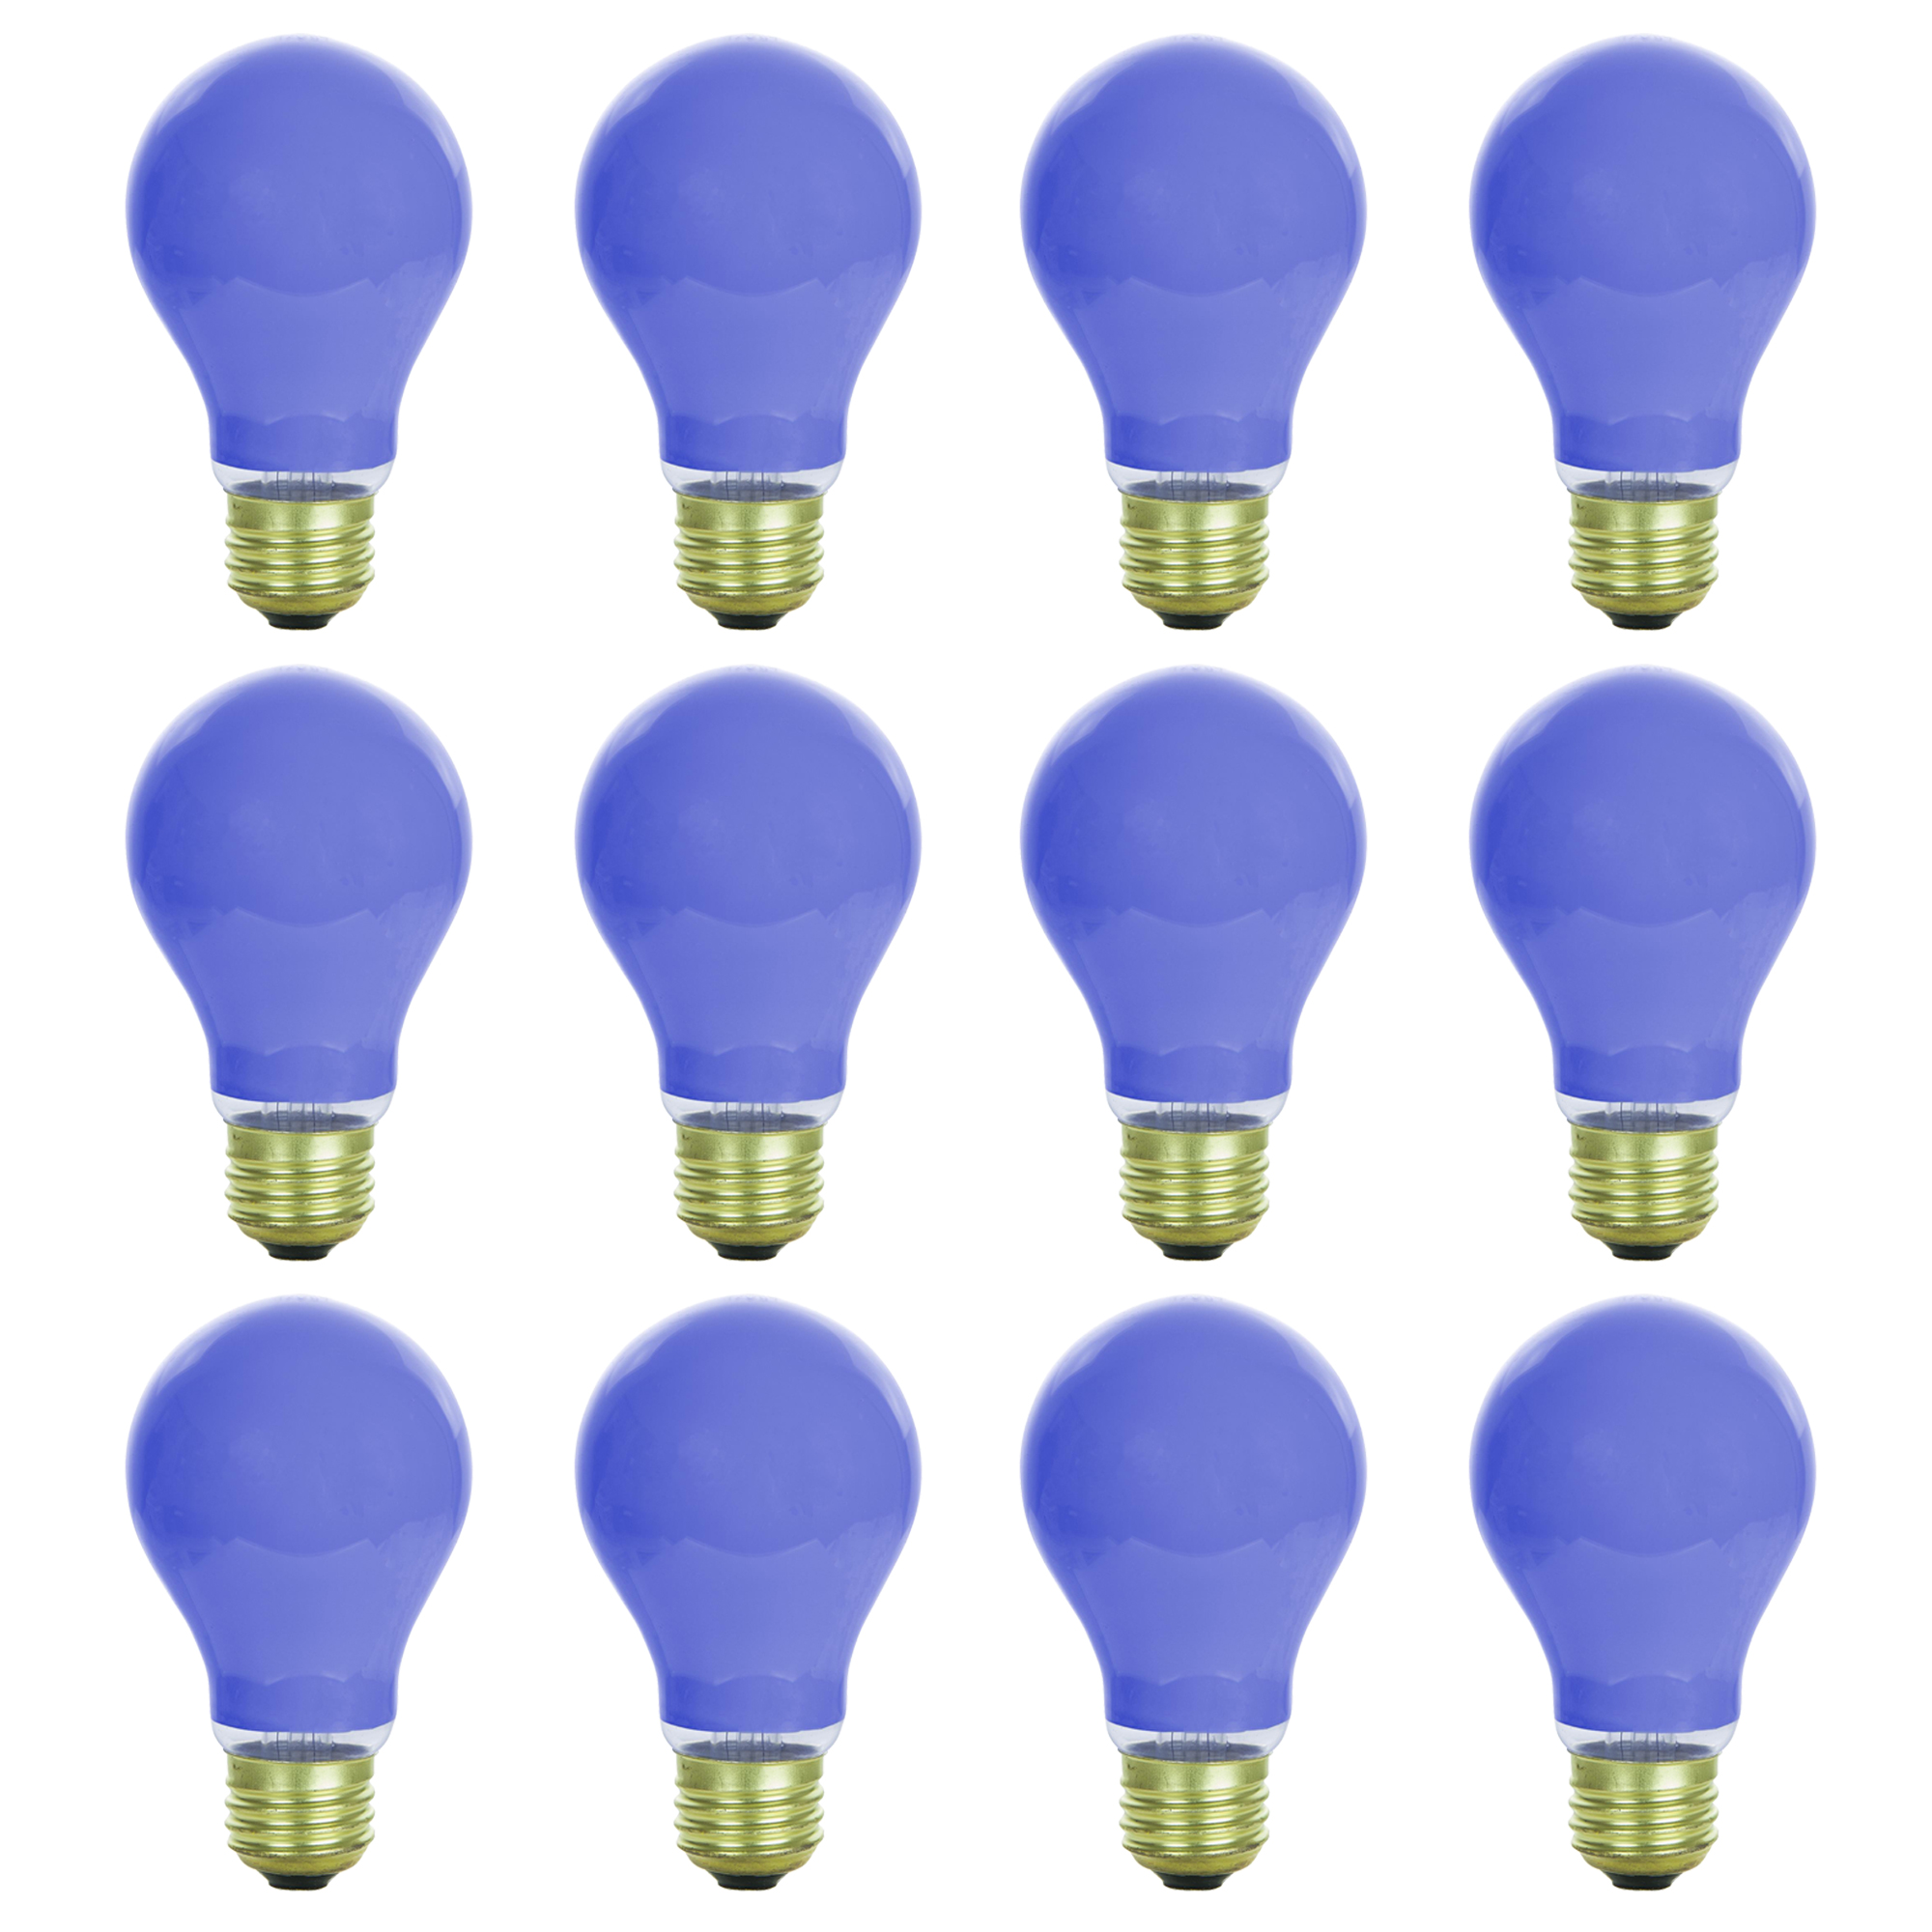 12 Pack of Sunlite 25 watt Ceramic Blue Colored Incandescent Light Bulb - Parties, Decorative, and Holiday 1,250 Average Life Hours